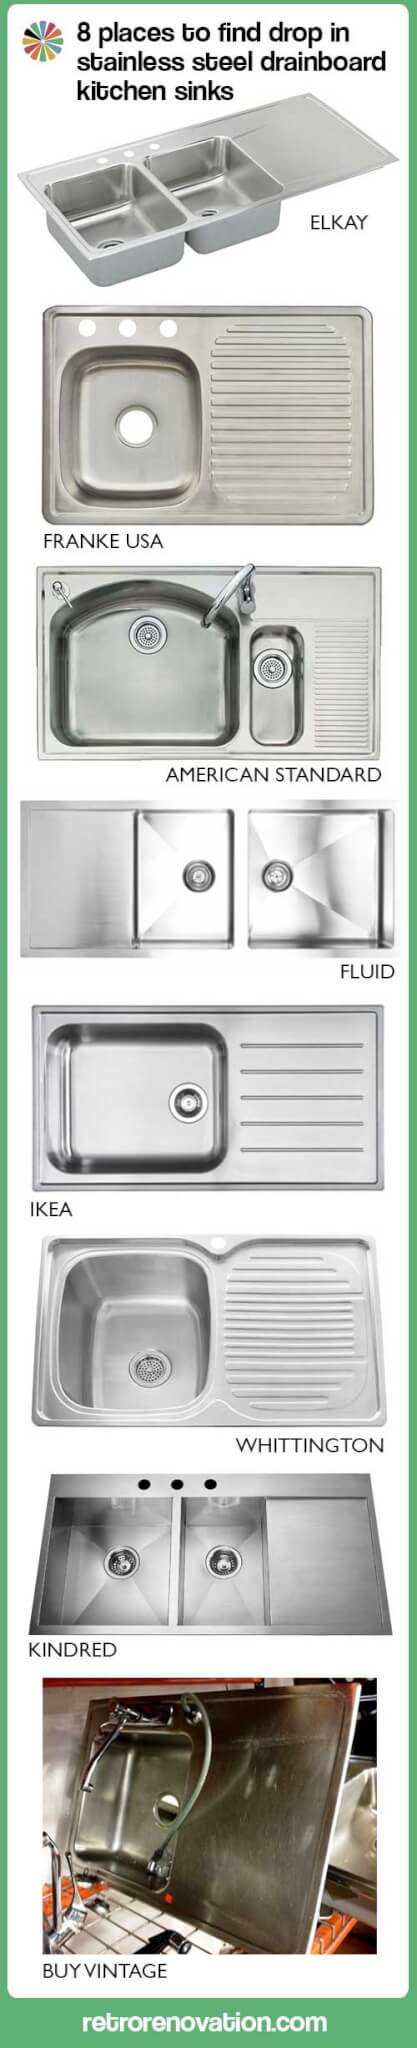 Drop-in-ss-drainboard-sinks